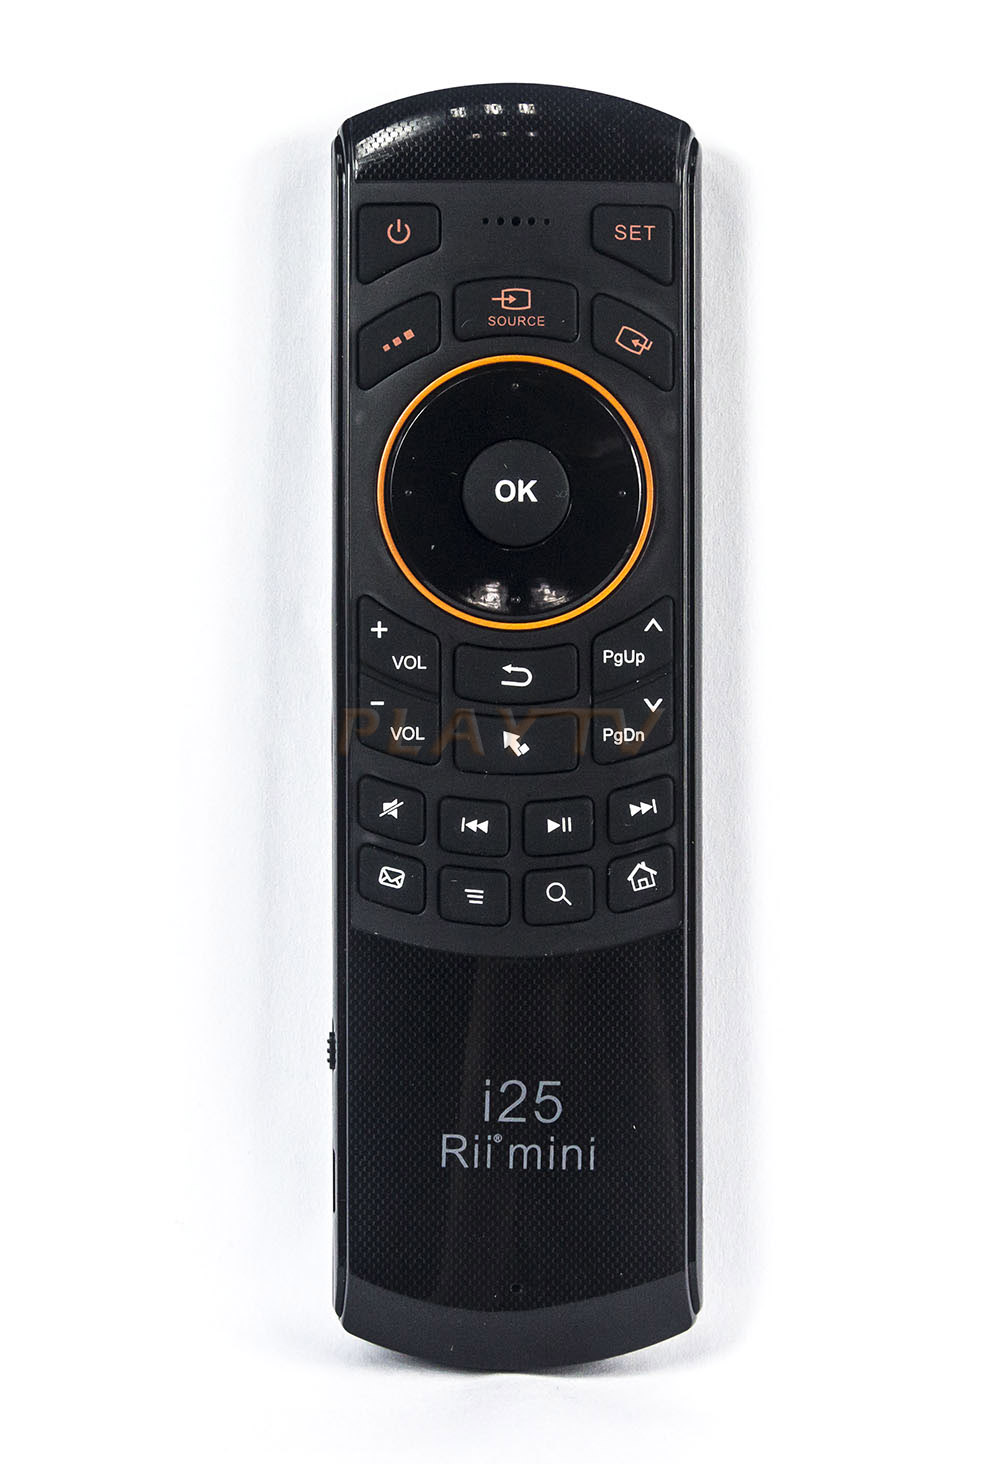 rii mini i25 user manual